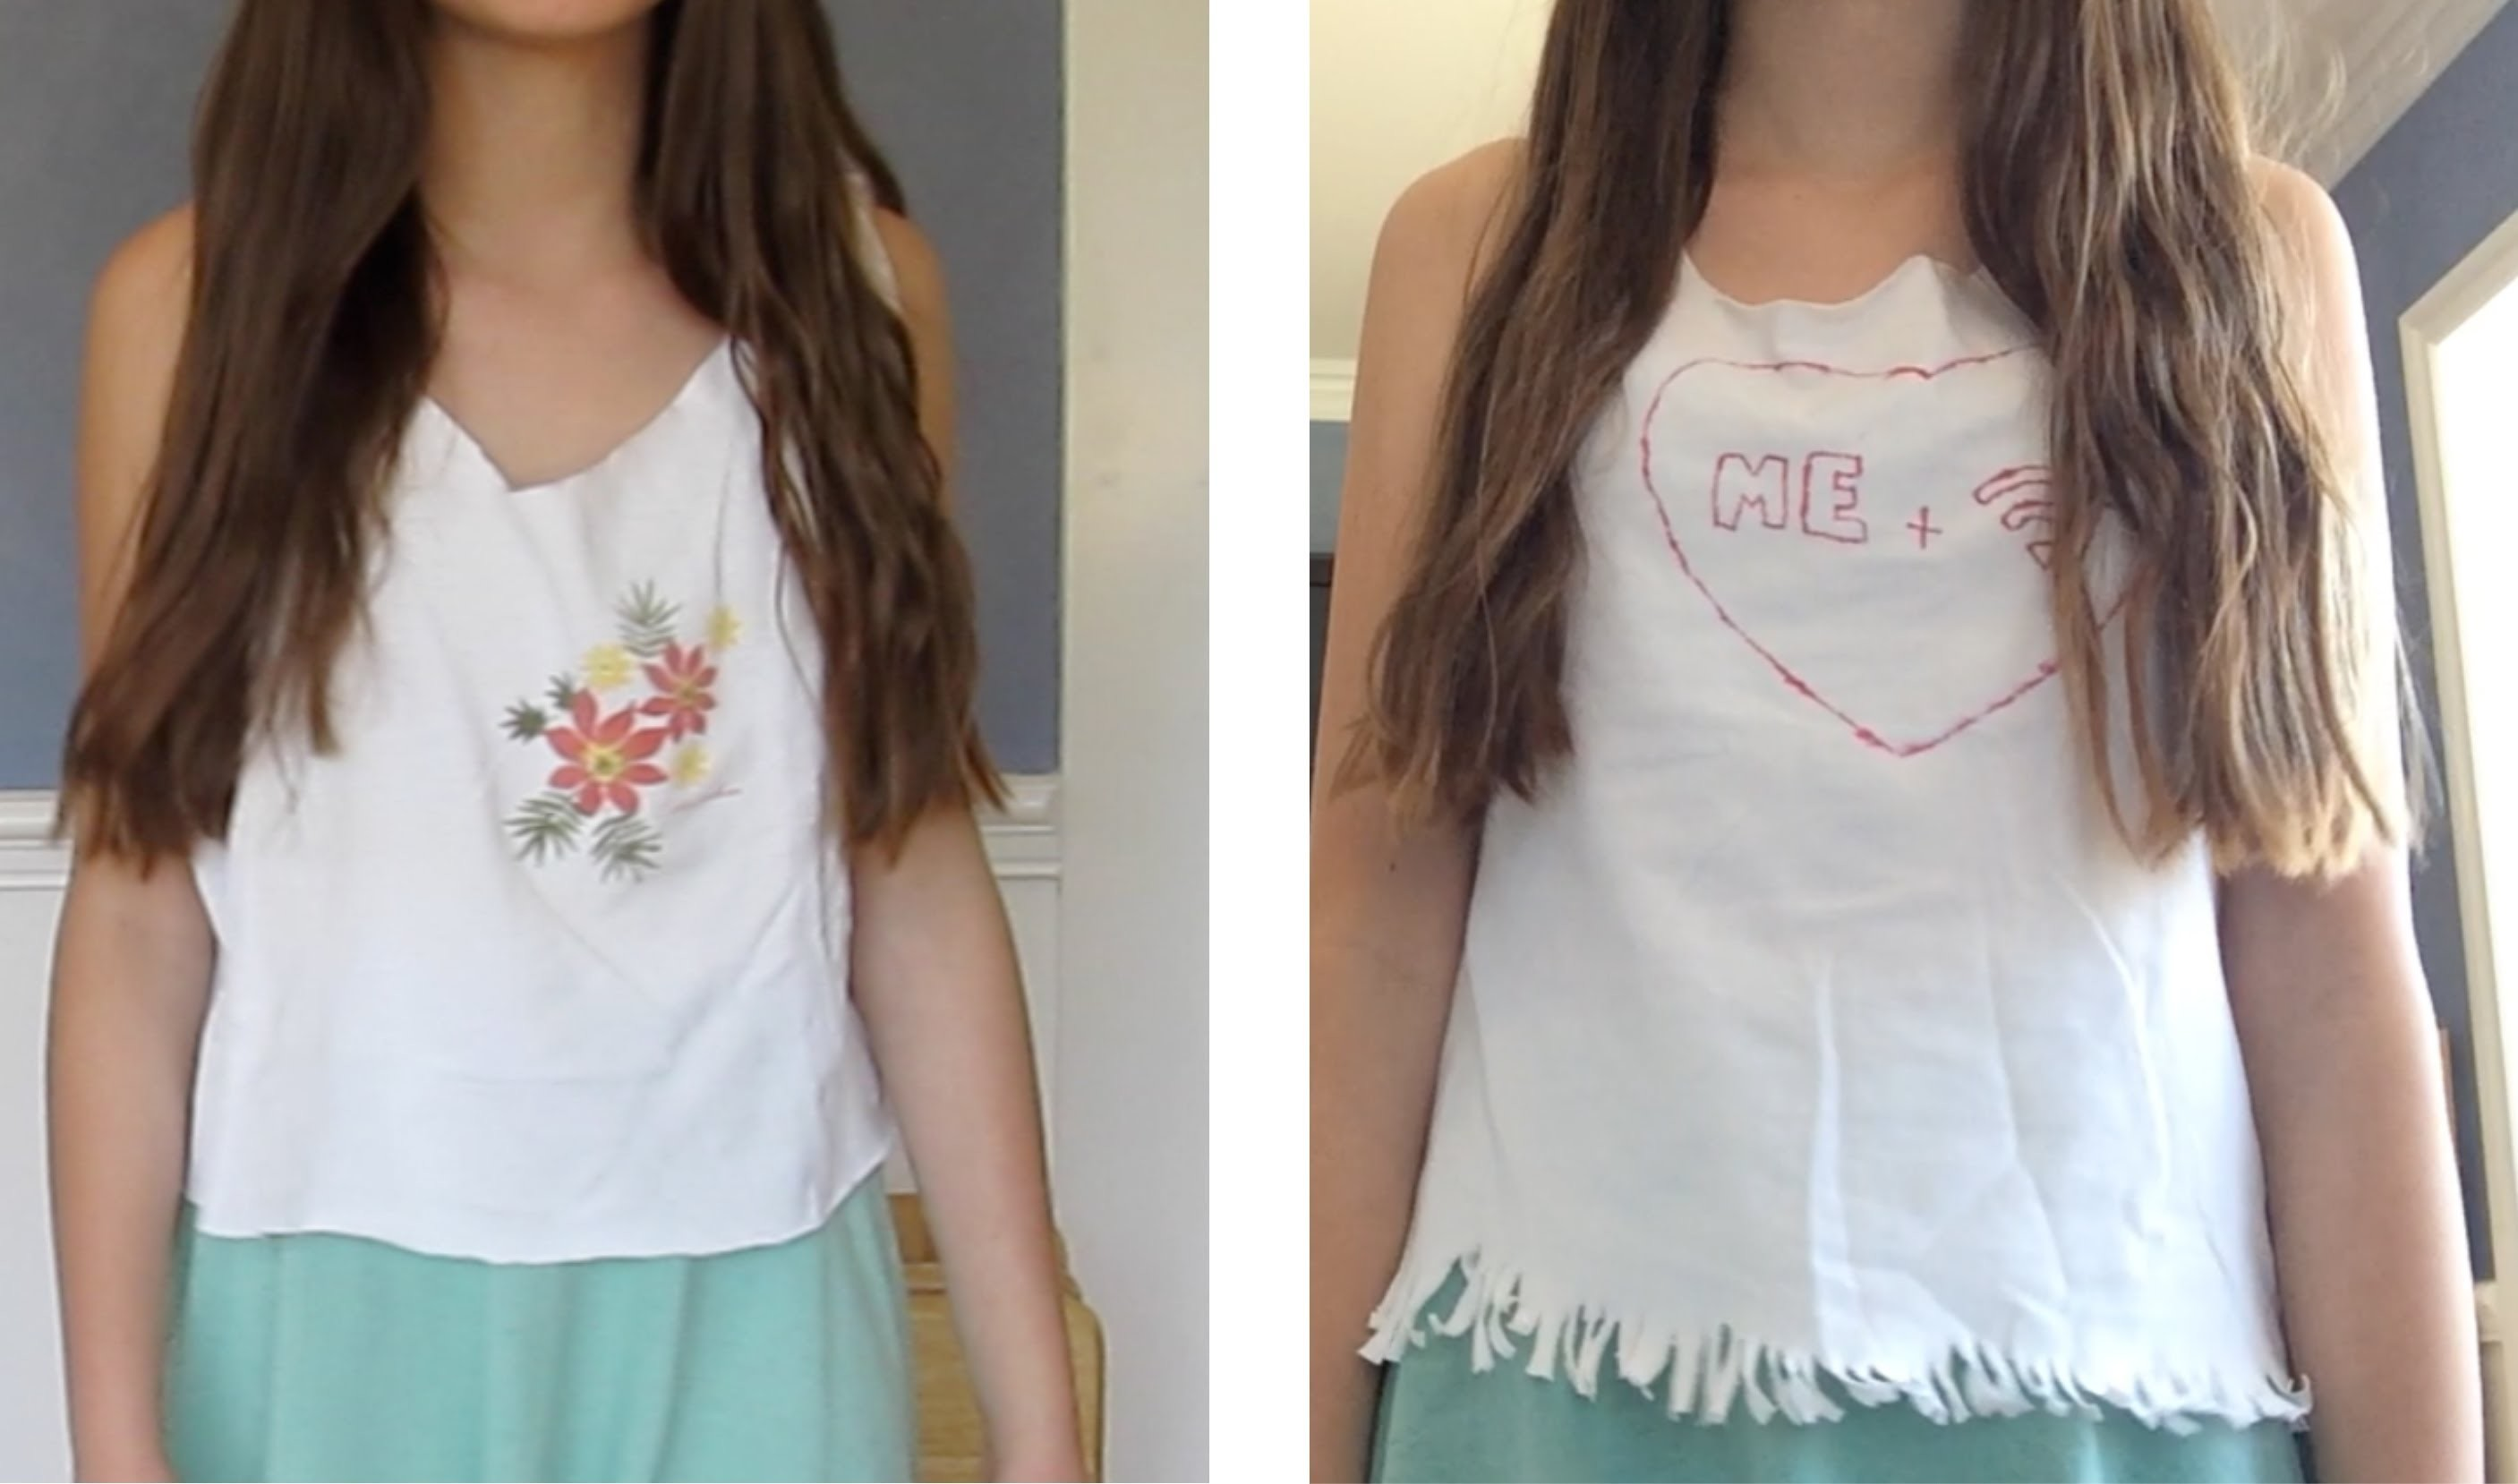 Easy and fun diy shirts!